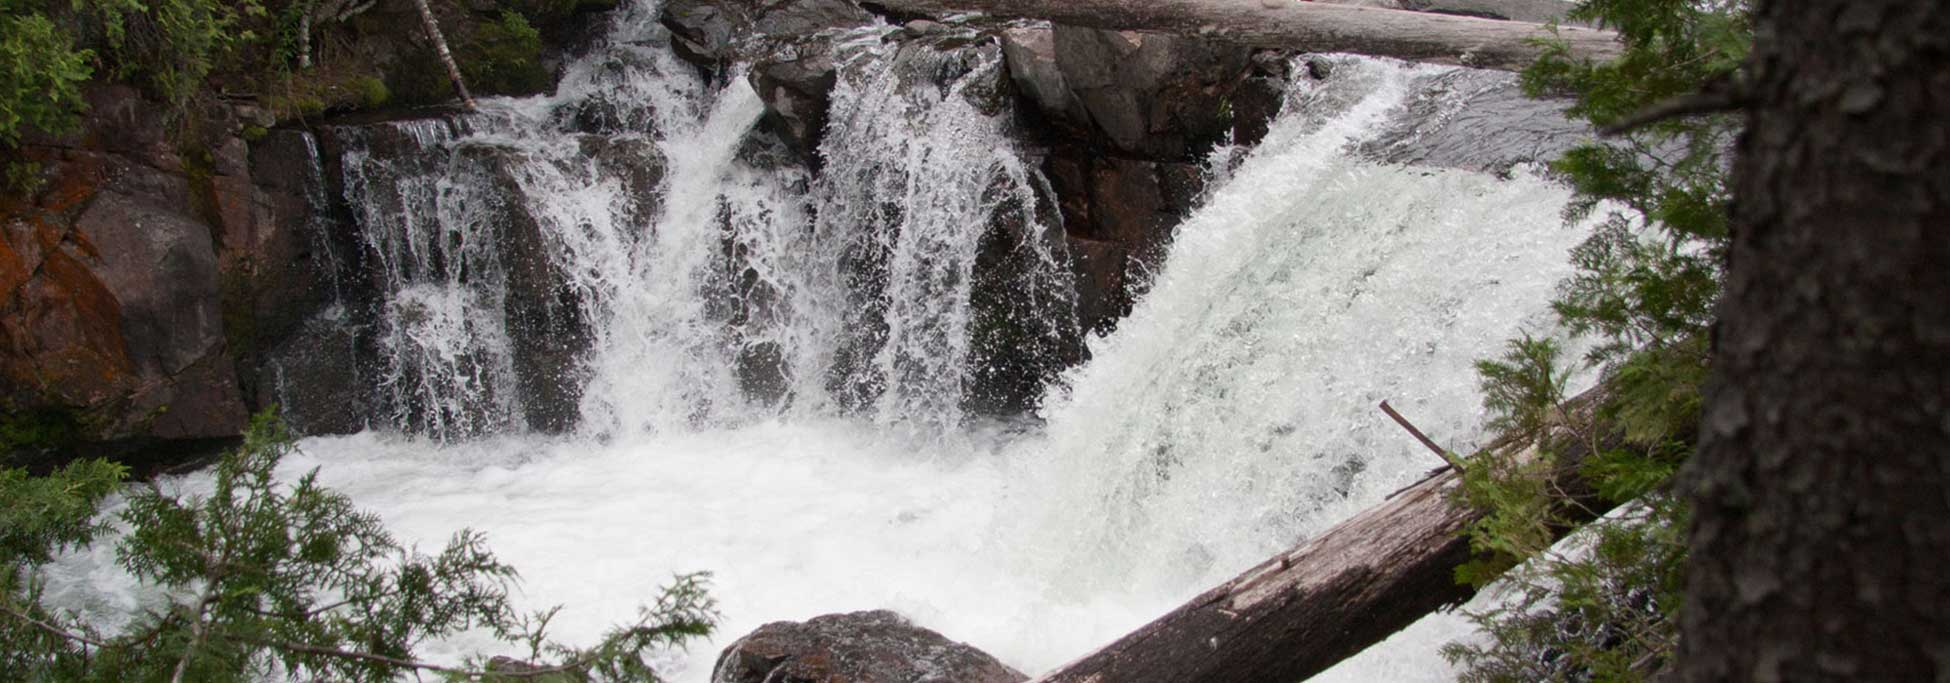 waterfalls at trout fishing camp and lodge ontario